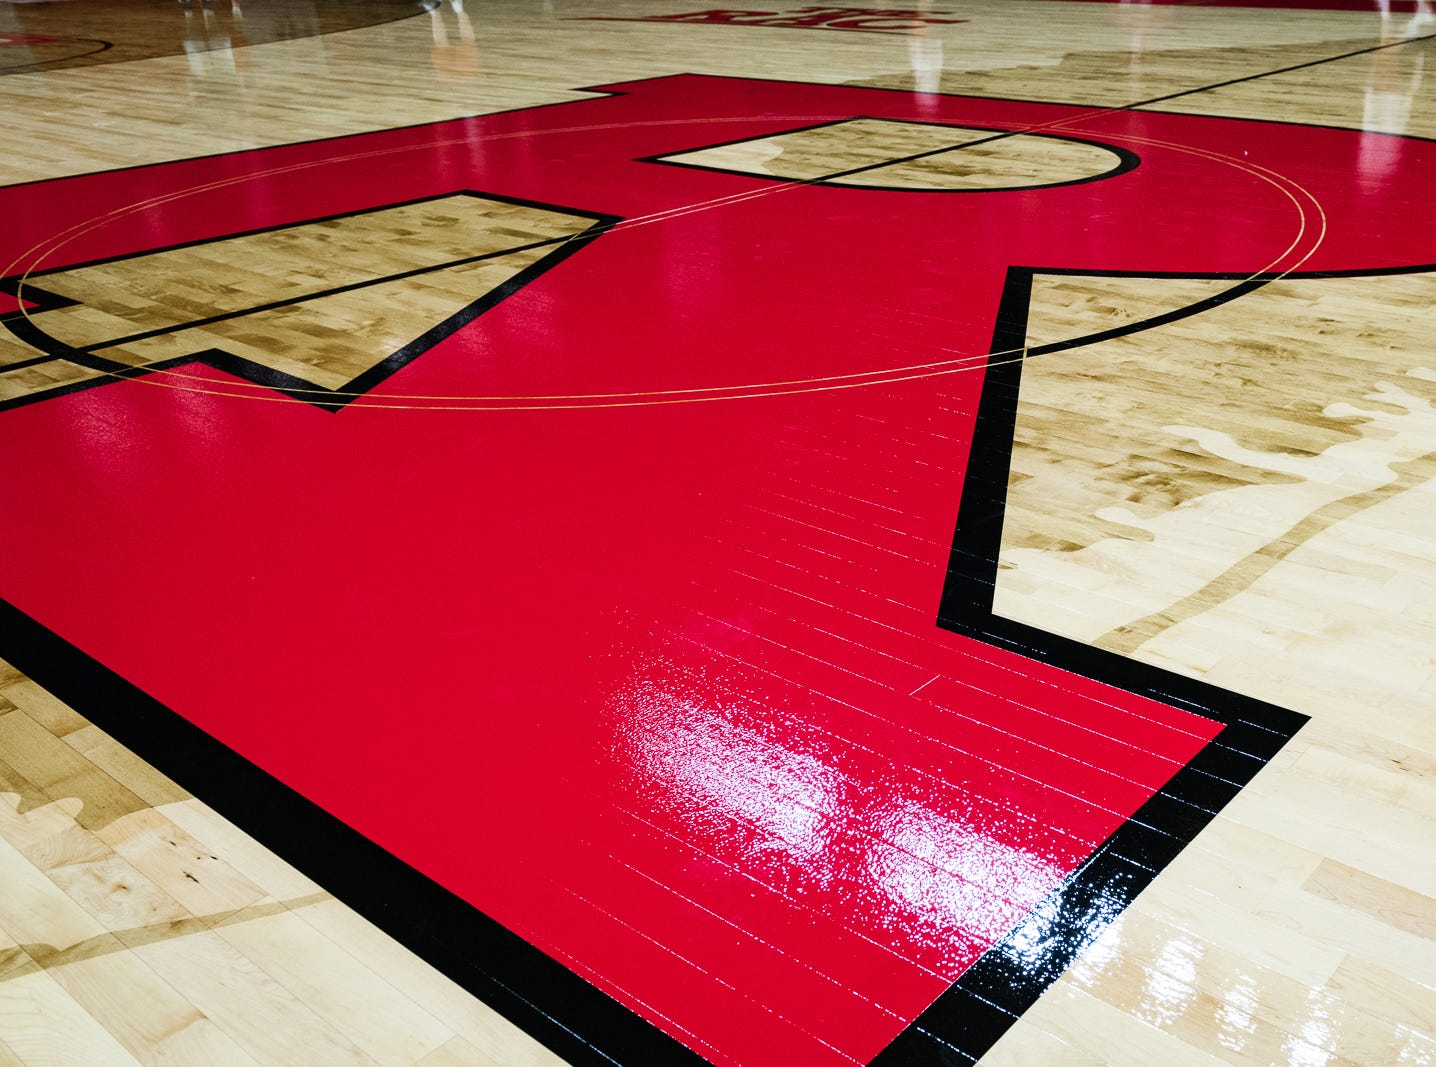 The new basketball court in Rutgers Athletic Center, Piscataway.